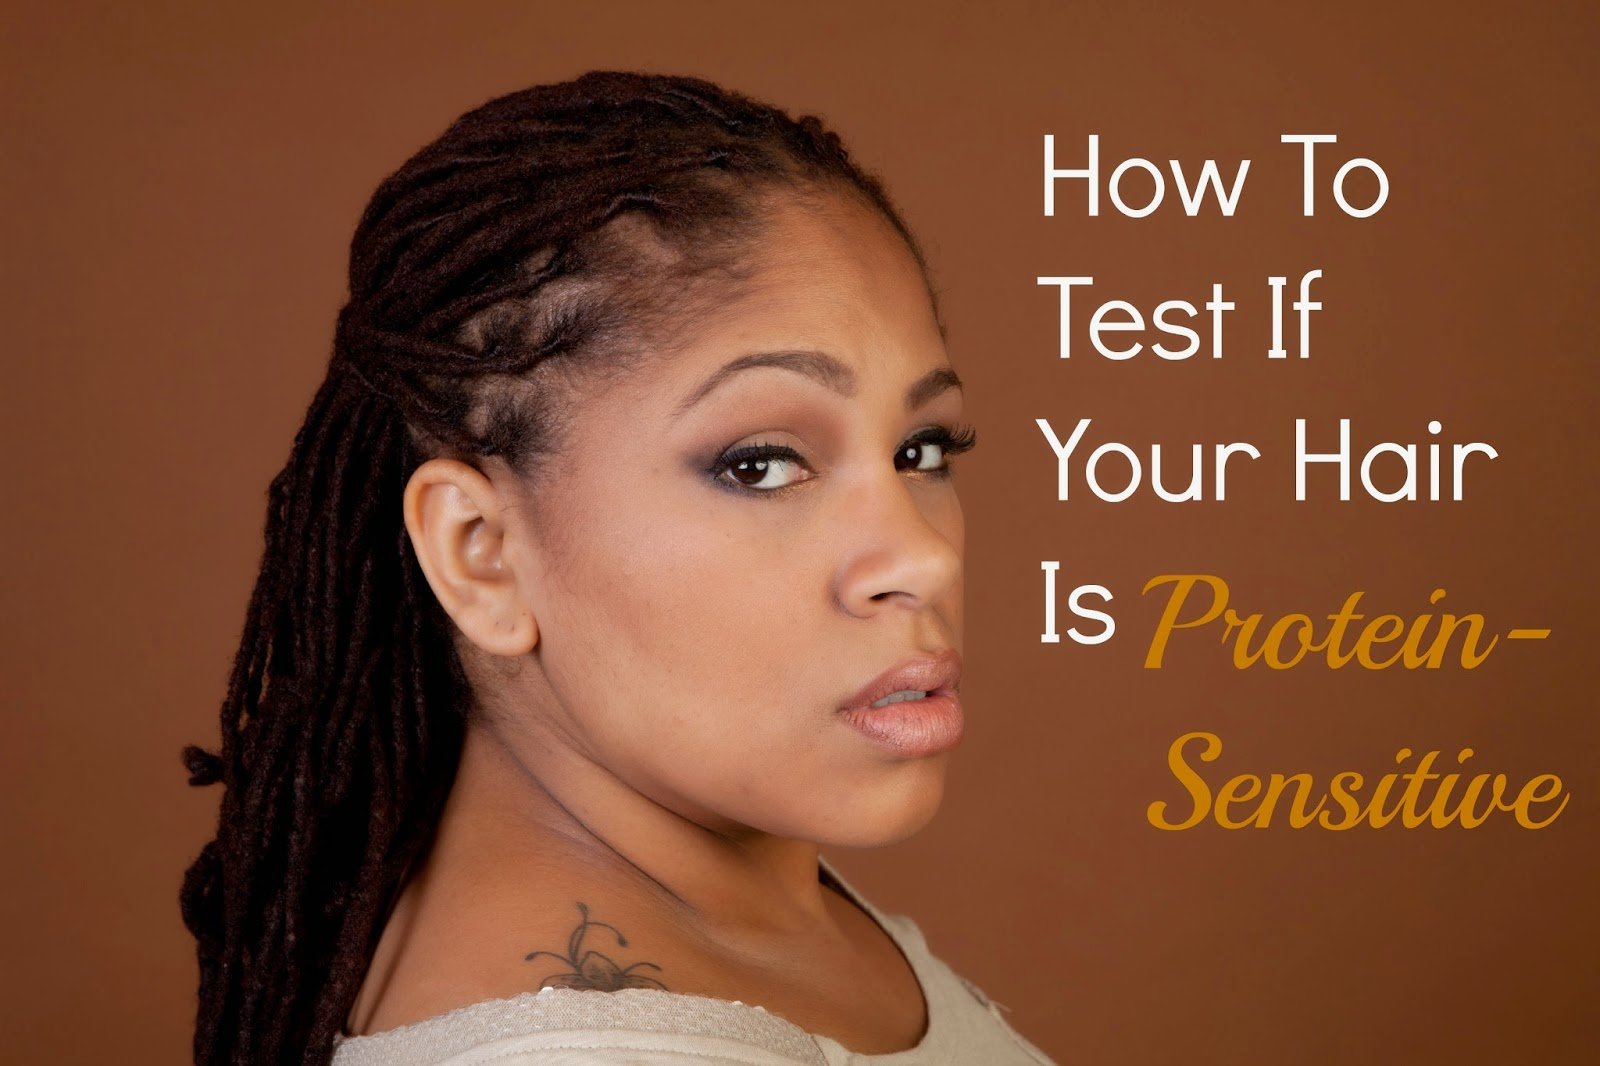 How To Test If Your Hair Is Protein-Sensitive (www.seriouslynatural.org)